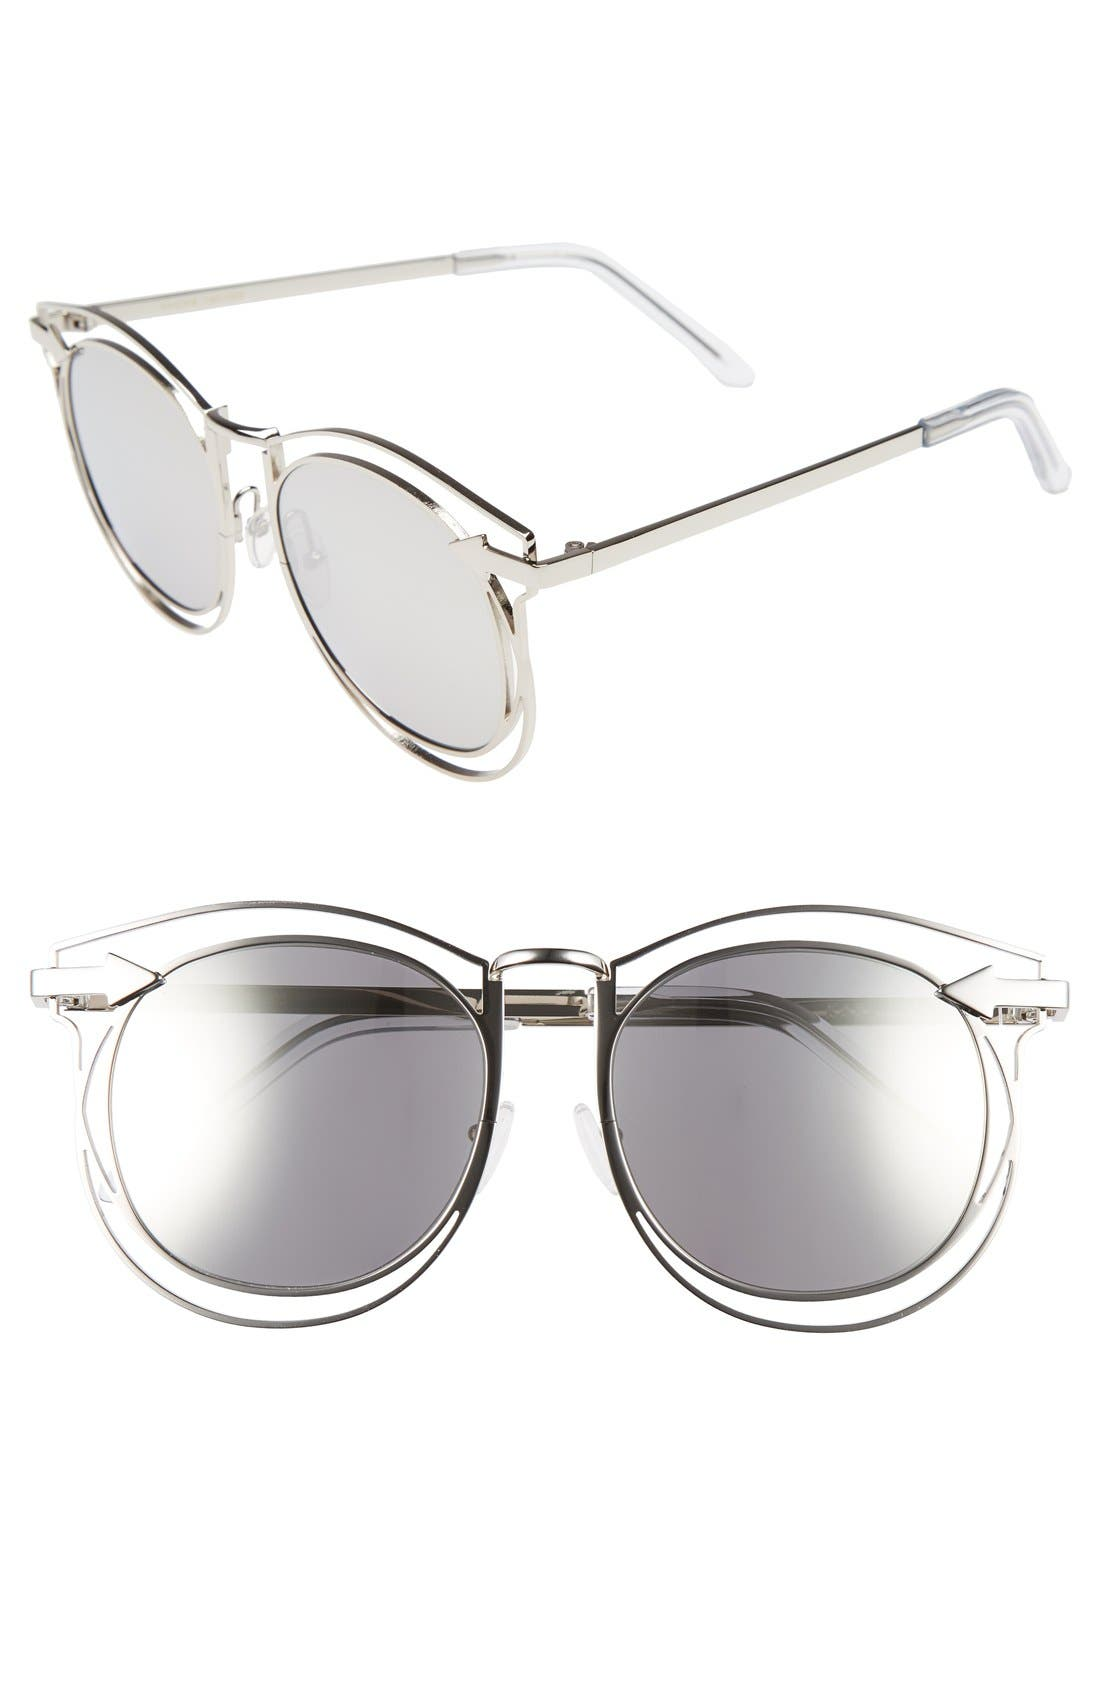 Main Image - Karen Walker 'Simone' 54mm Retro Sunglasses